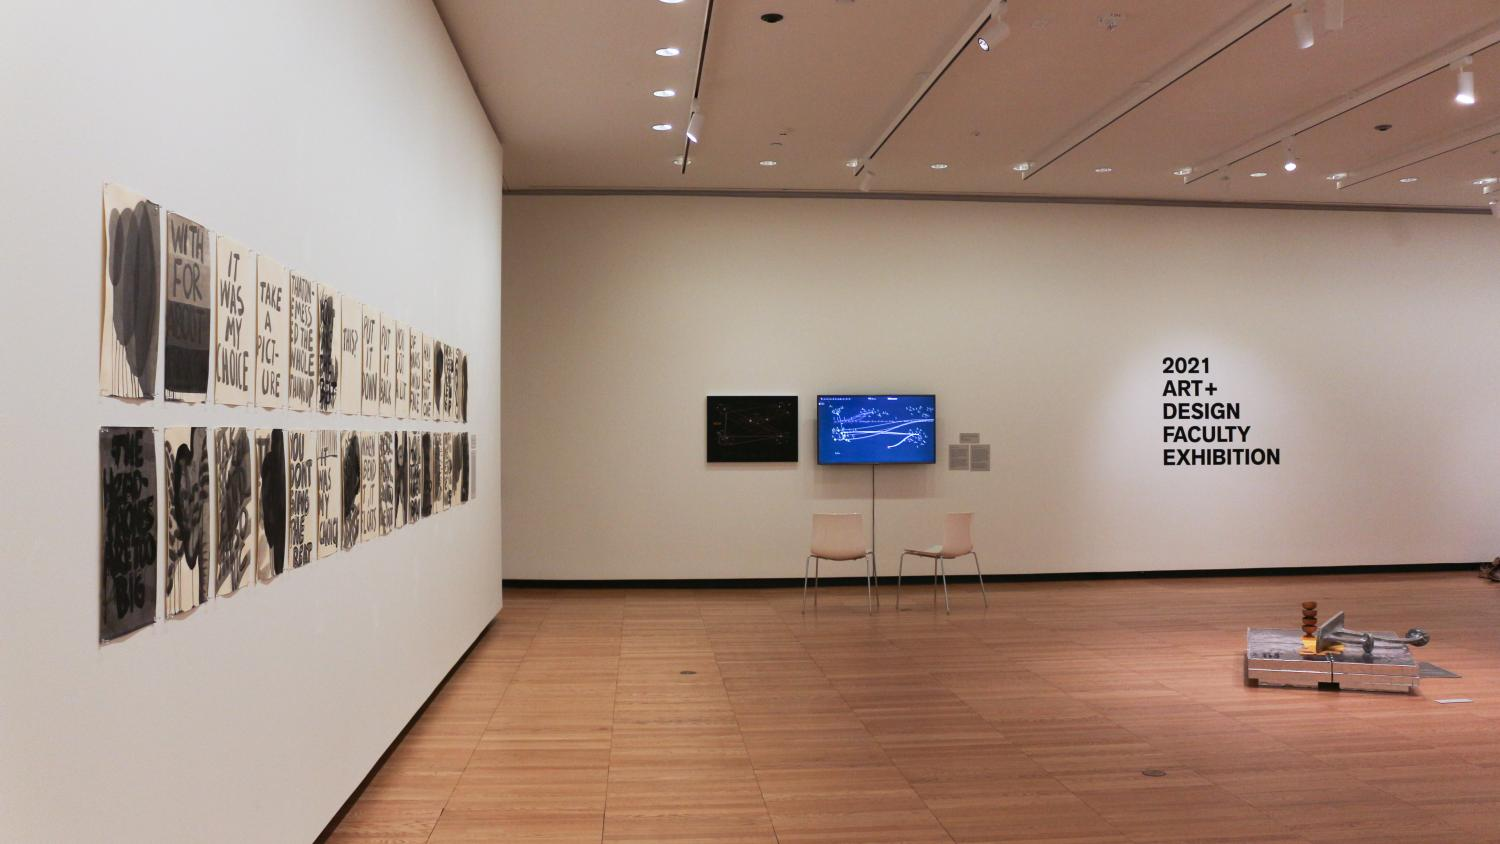 """Installed artwork in Krannert Art Museum's West Gallery, including works on paper, a digital display, and sculpture with the title wall """"2021 Art+Design Faculty Exhibition"""""""